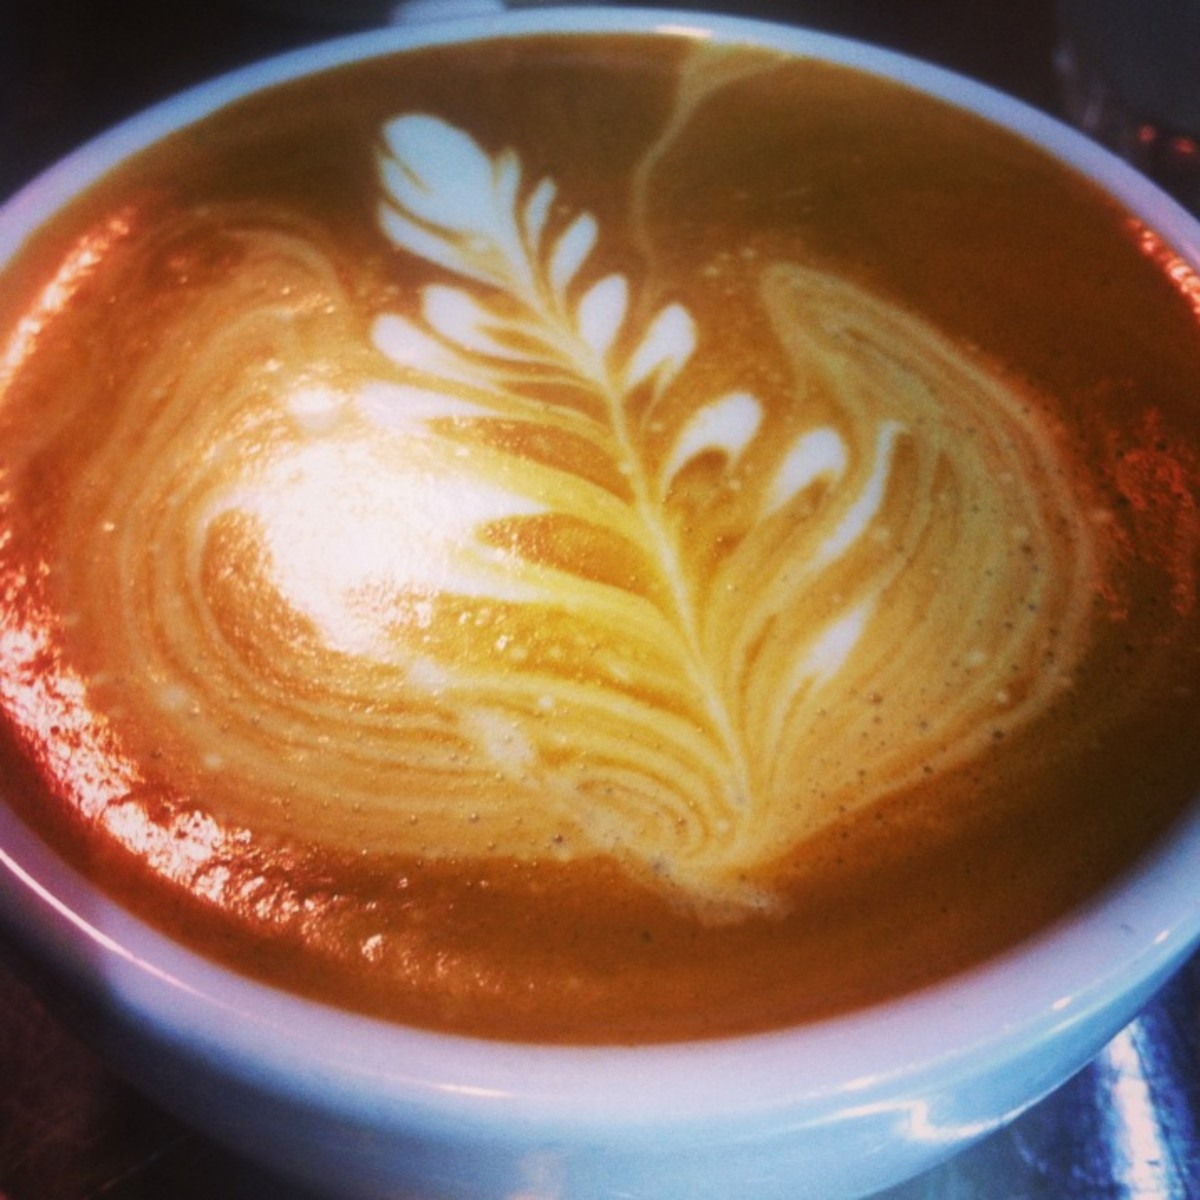 Latte Art Tulip or Leaf